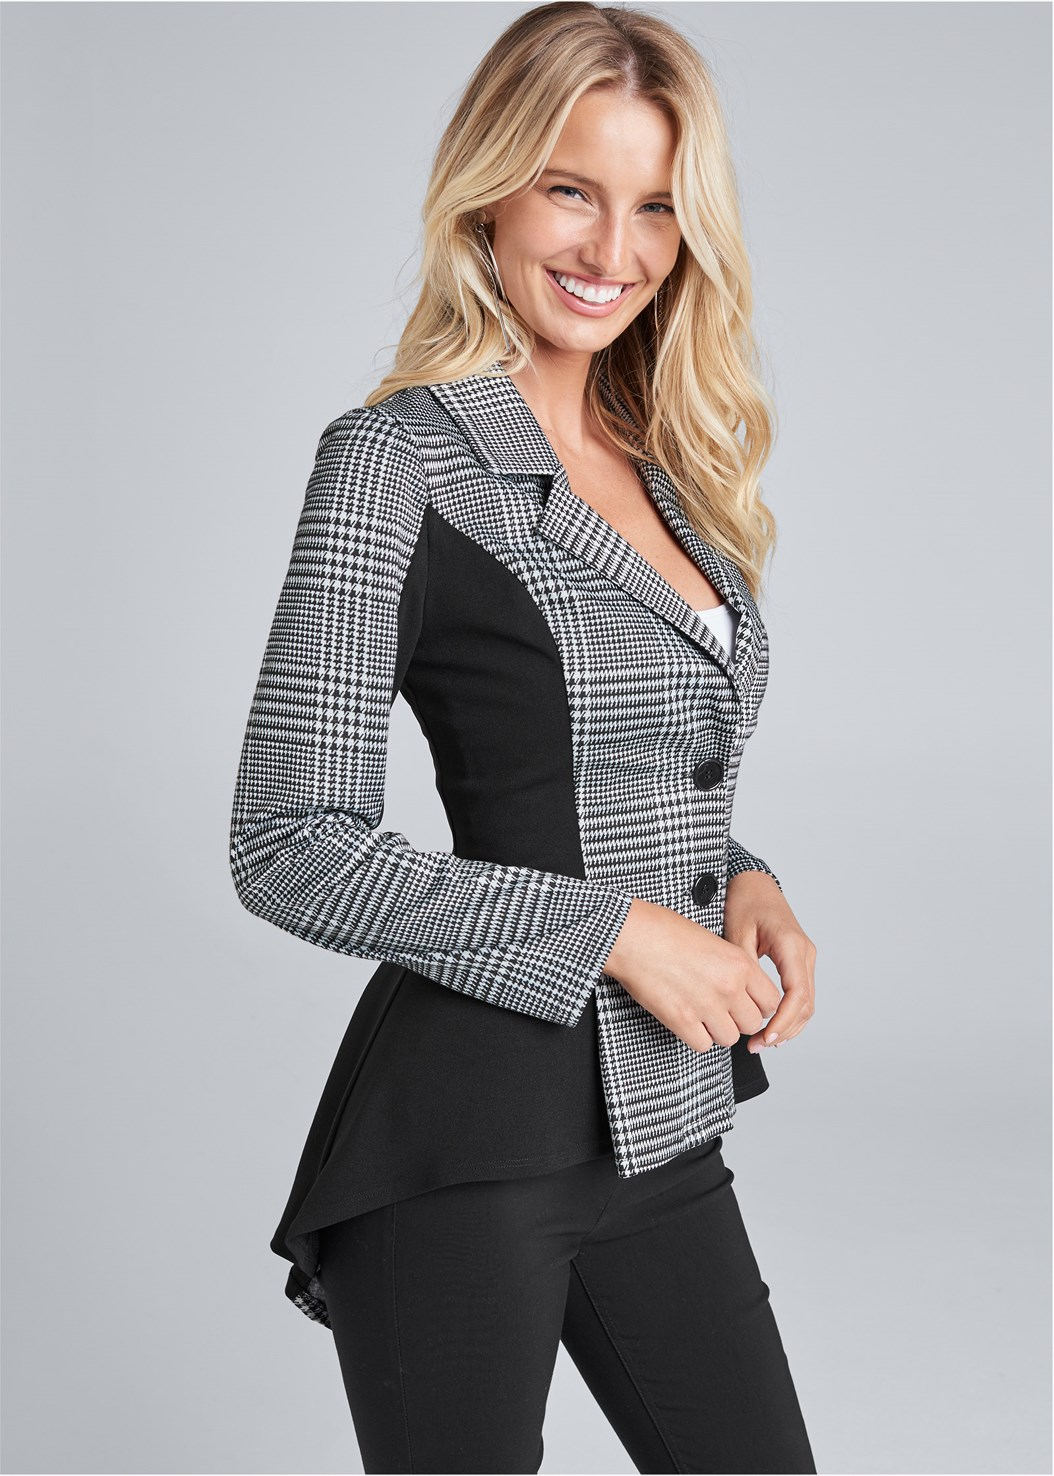 High Low Houndstooth Blazer,Lace Cami,Kissable Convertible Bra,Mid Rise Slimming Stretch Jeggings,High Heel Strappy Sandals,Mix Metal Link Earrings,Studded Handbag,Hoop Detail Earrings,Basic Cami Two Pack